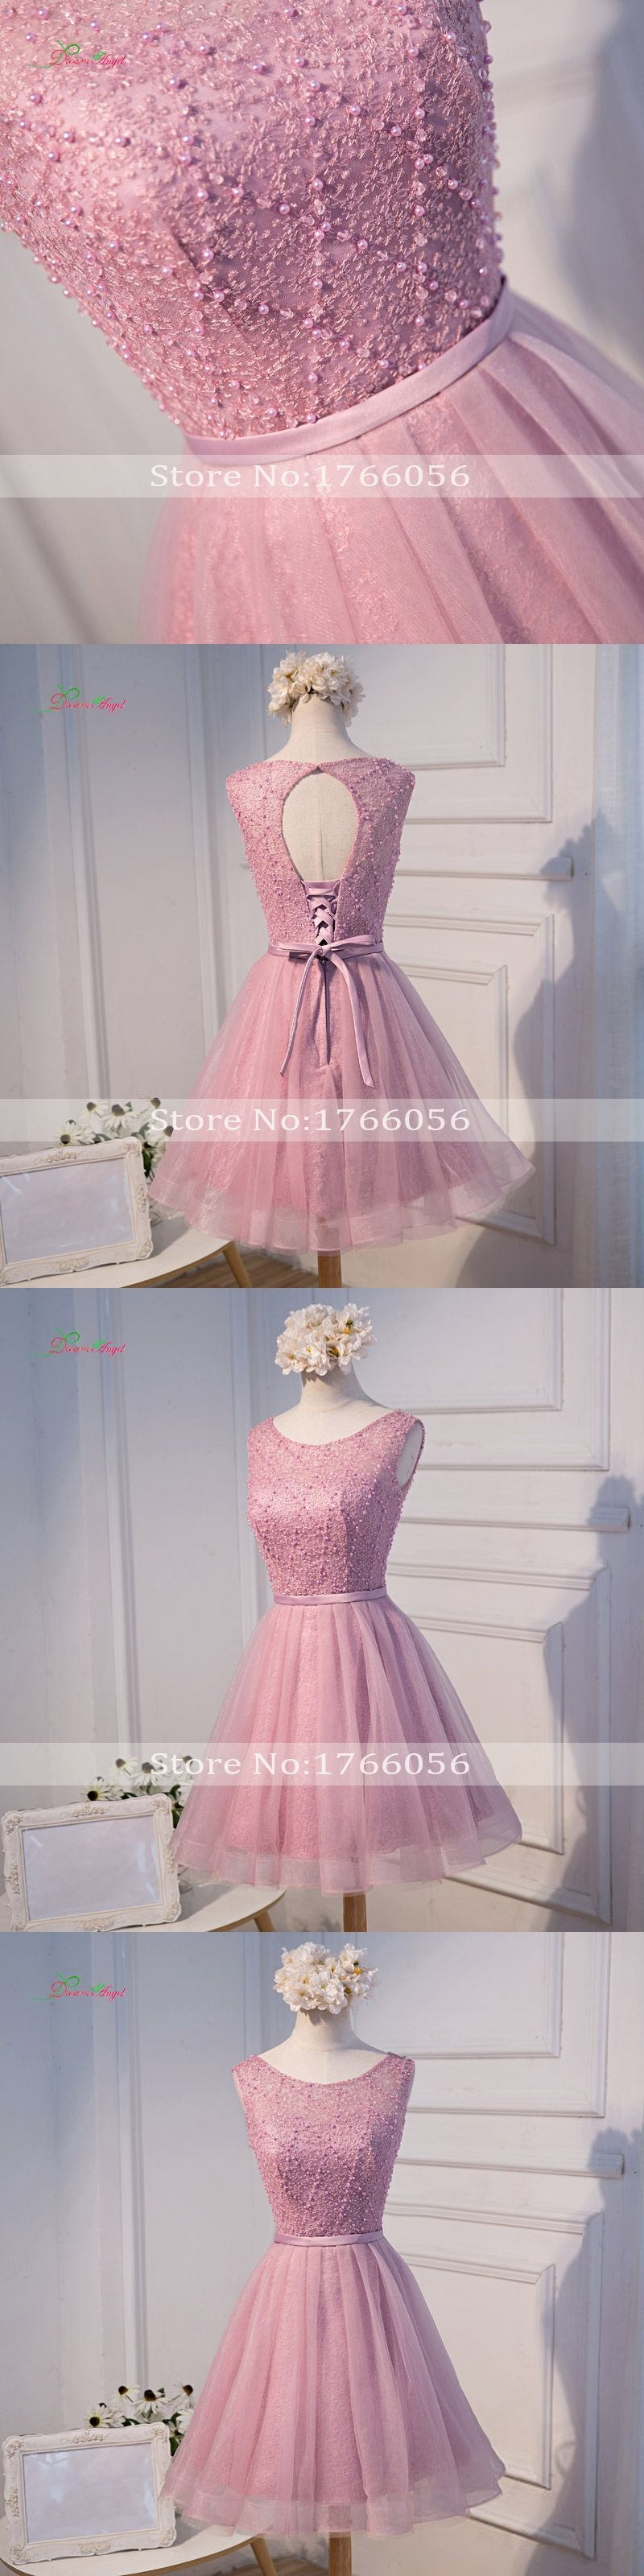 Dream angel elegant beading knee length homecoming dresses